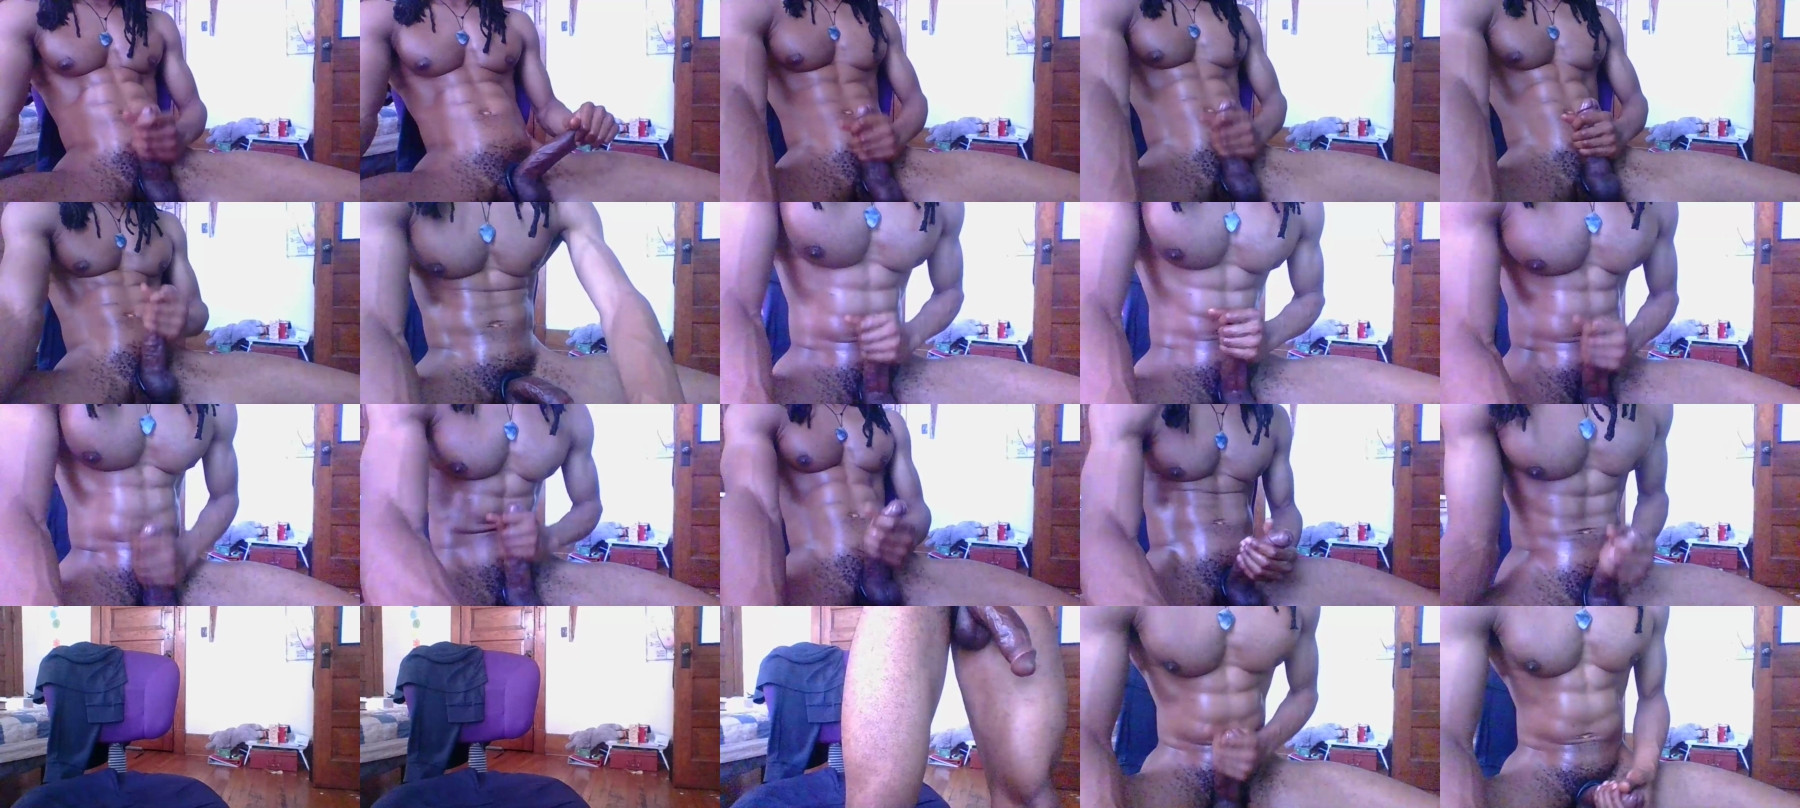 Zay7458 Chaturbate 08-04-2021 Male Download